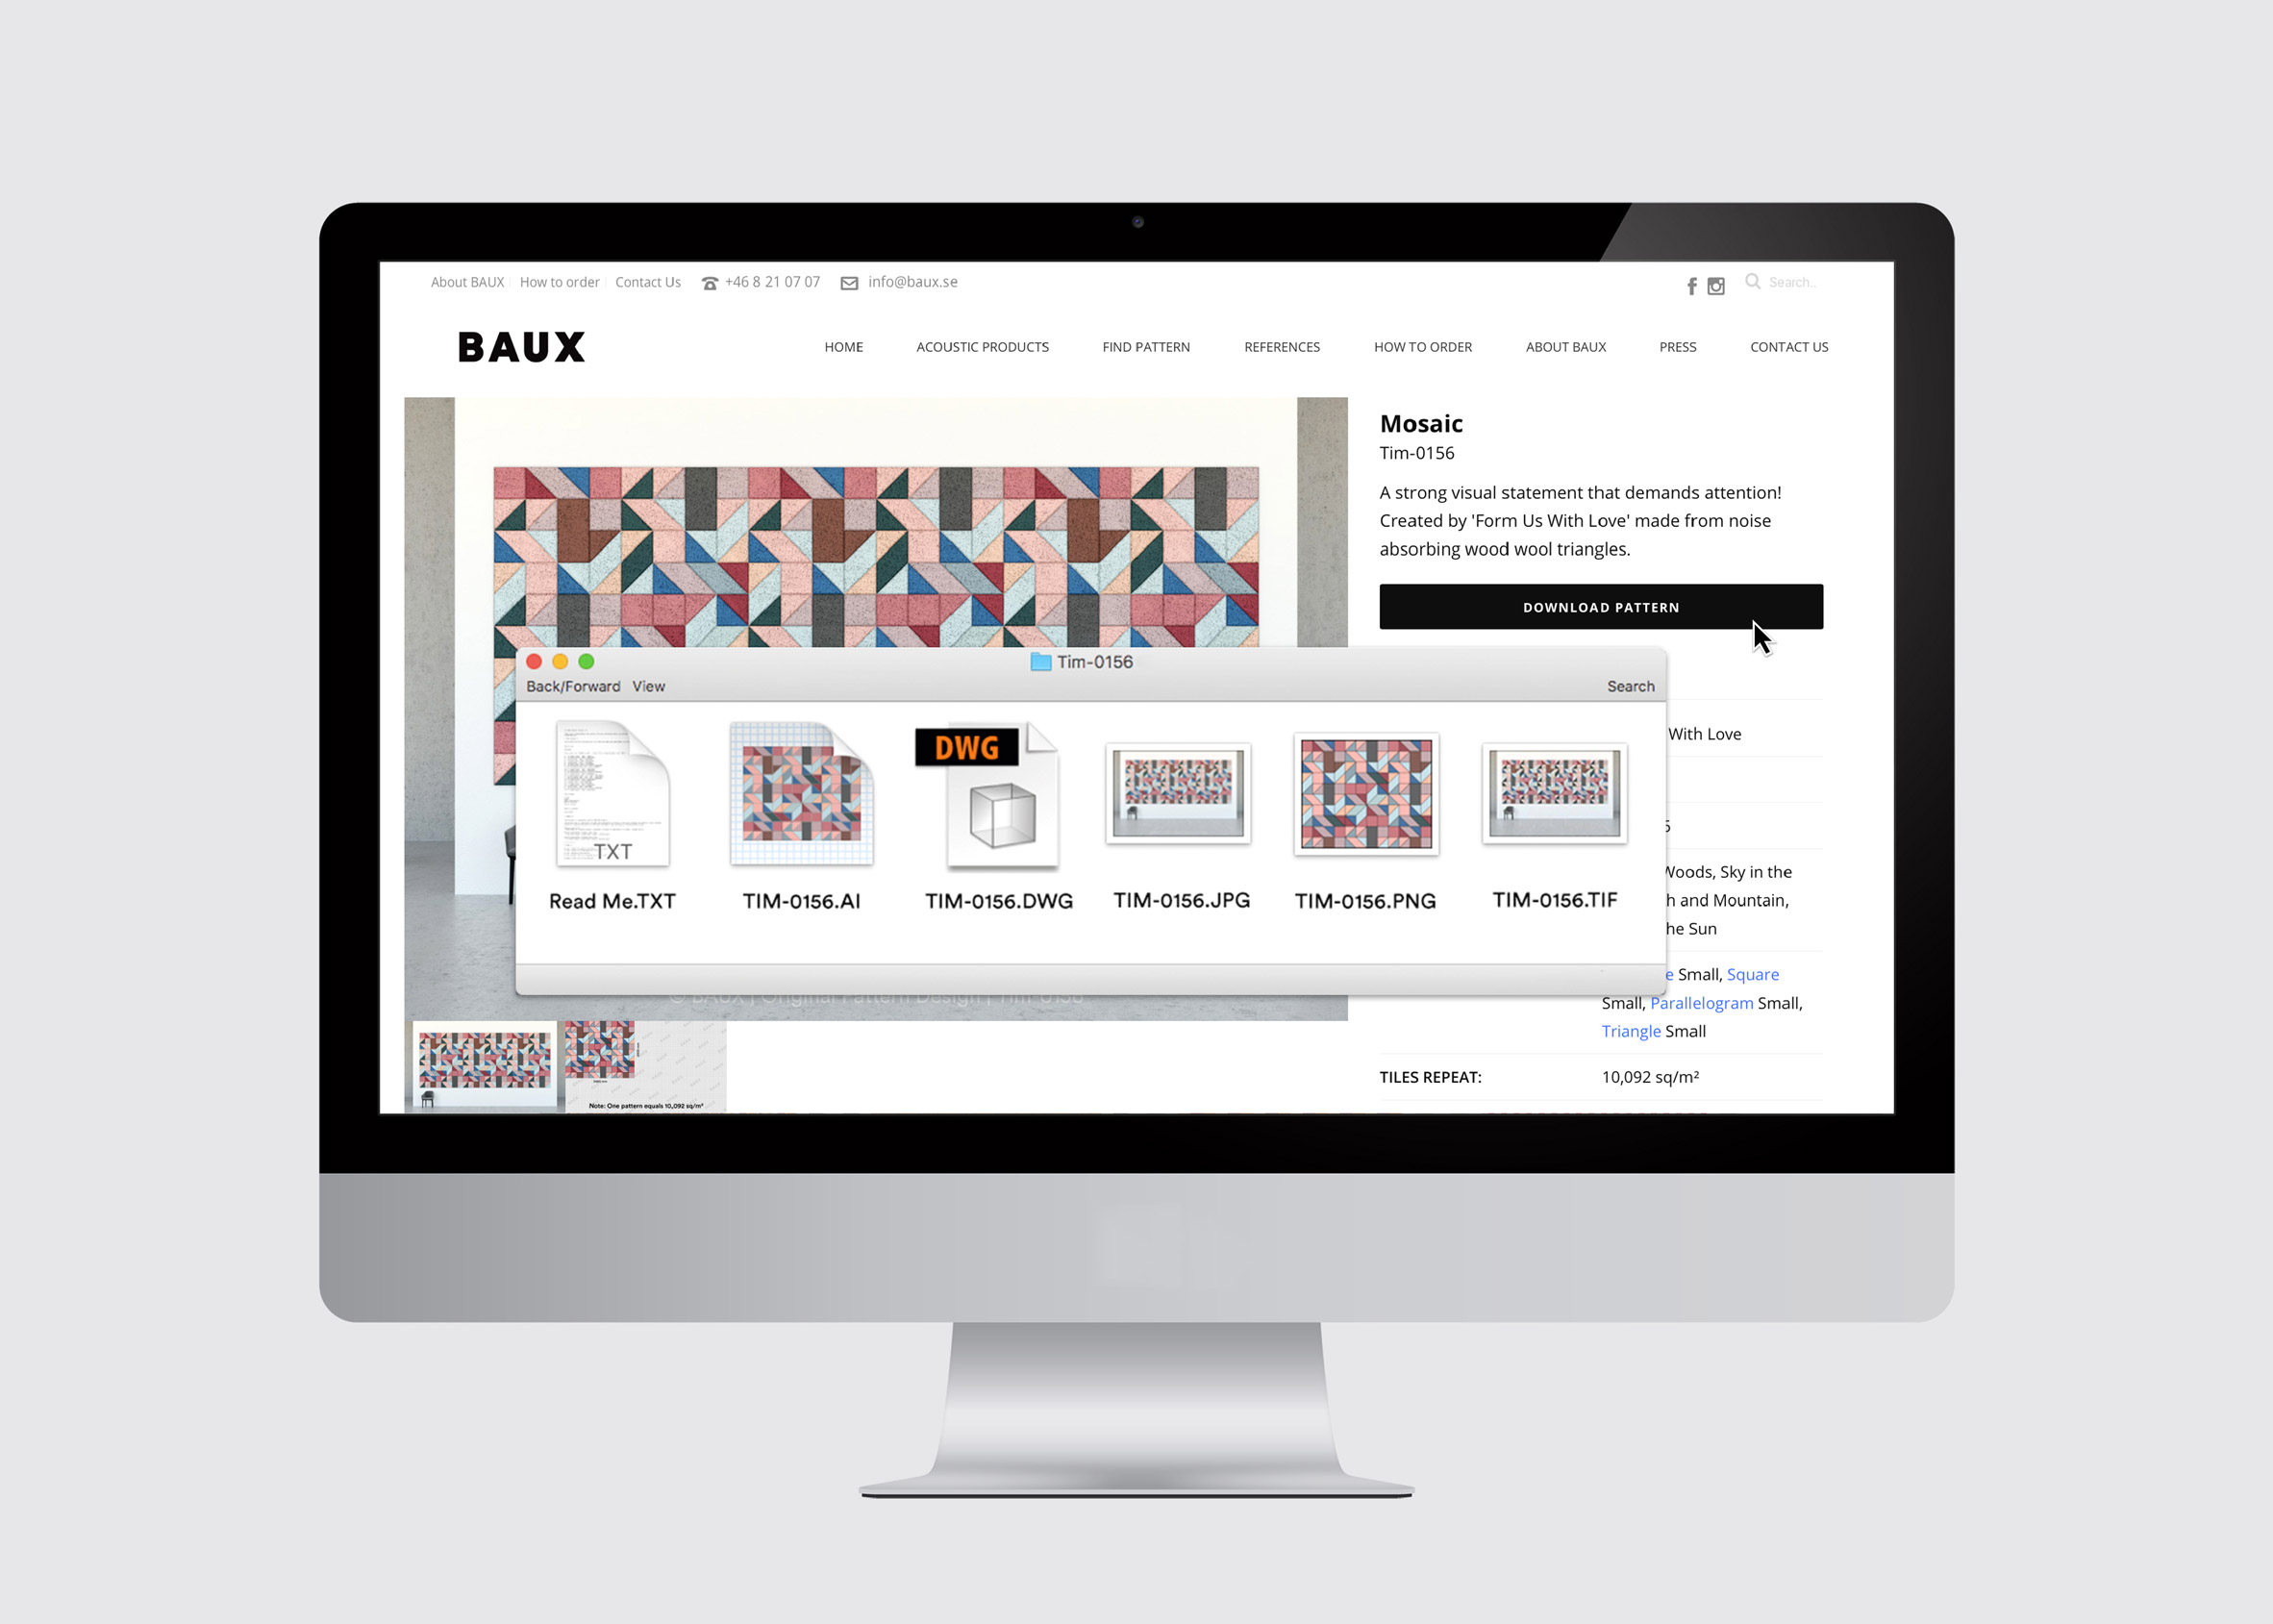 BAUX Pattern Tool Digital Library (3)